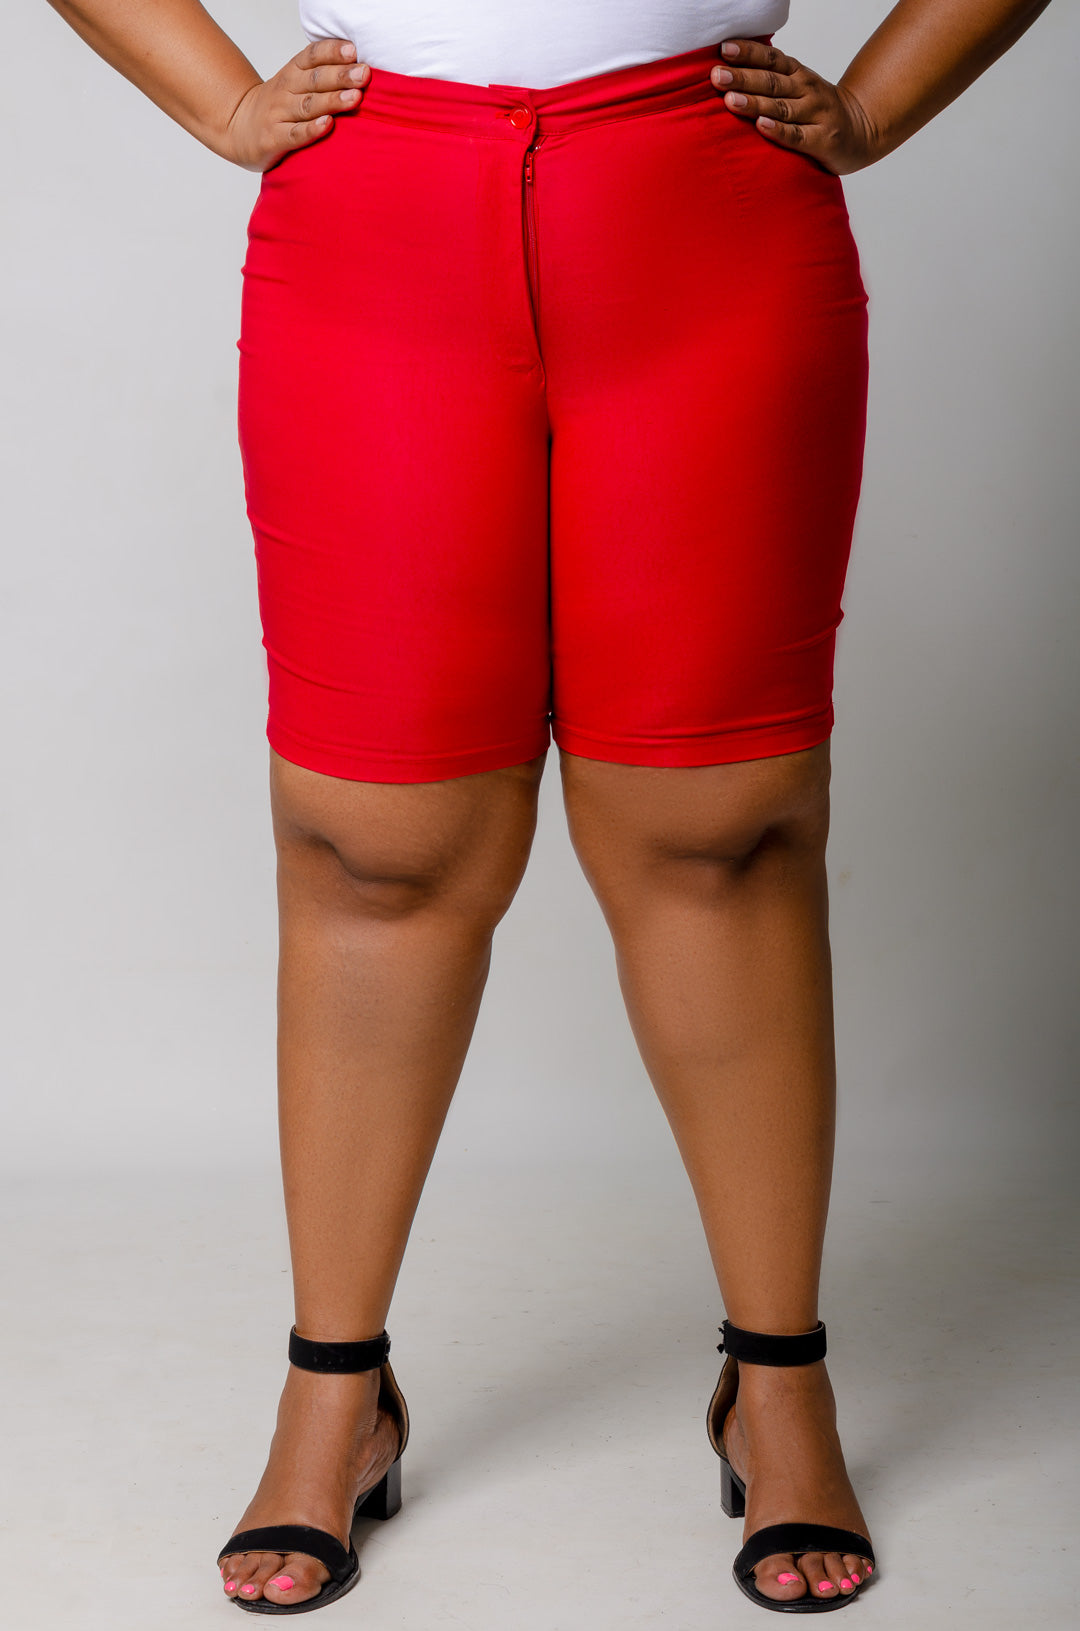 Phierce Fit Bermuda Shorts - Red